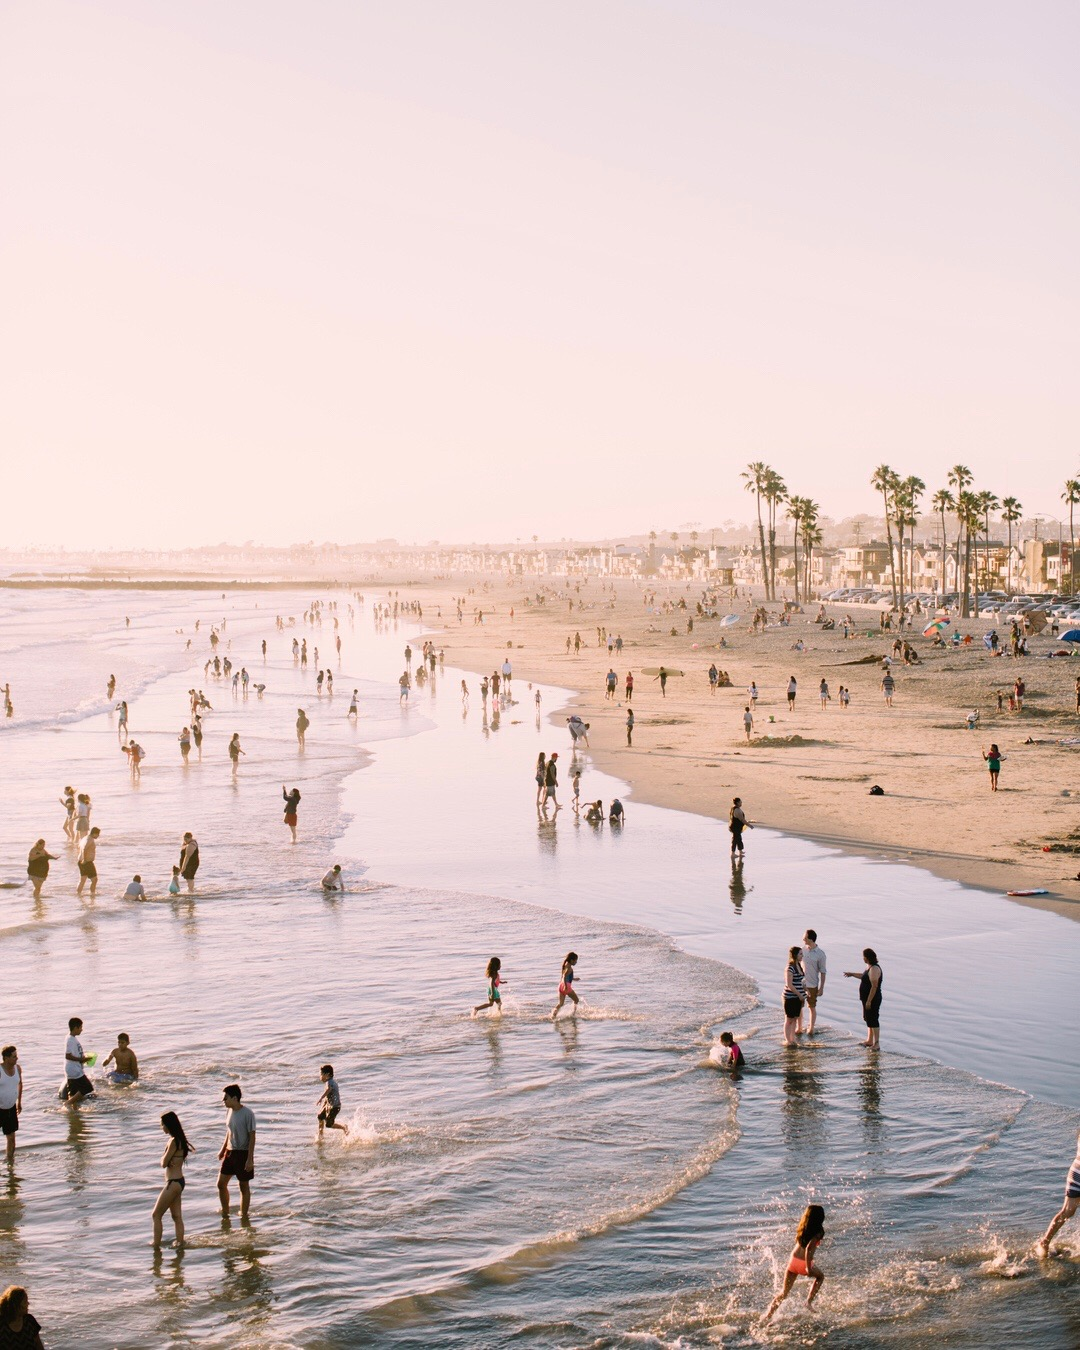 Photo of crowded beach with children playing